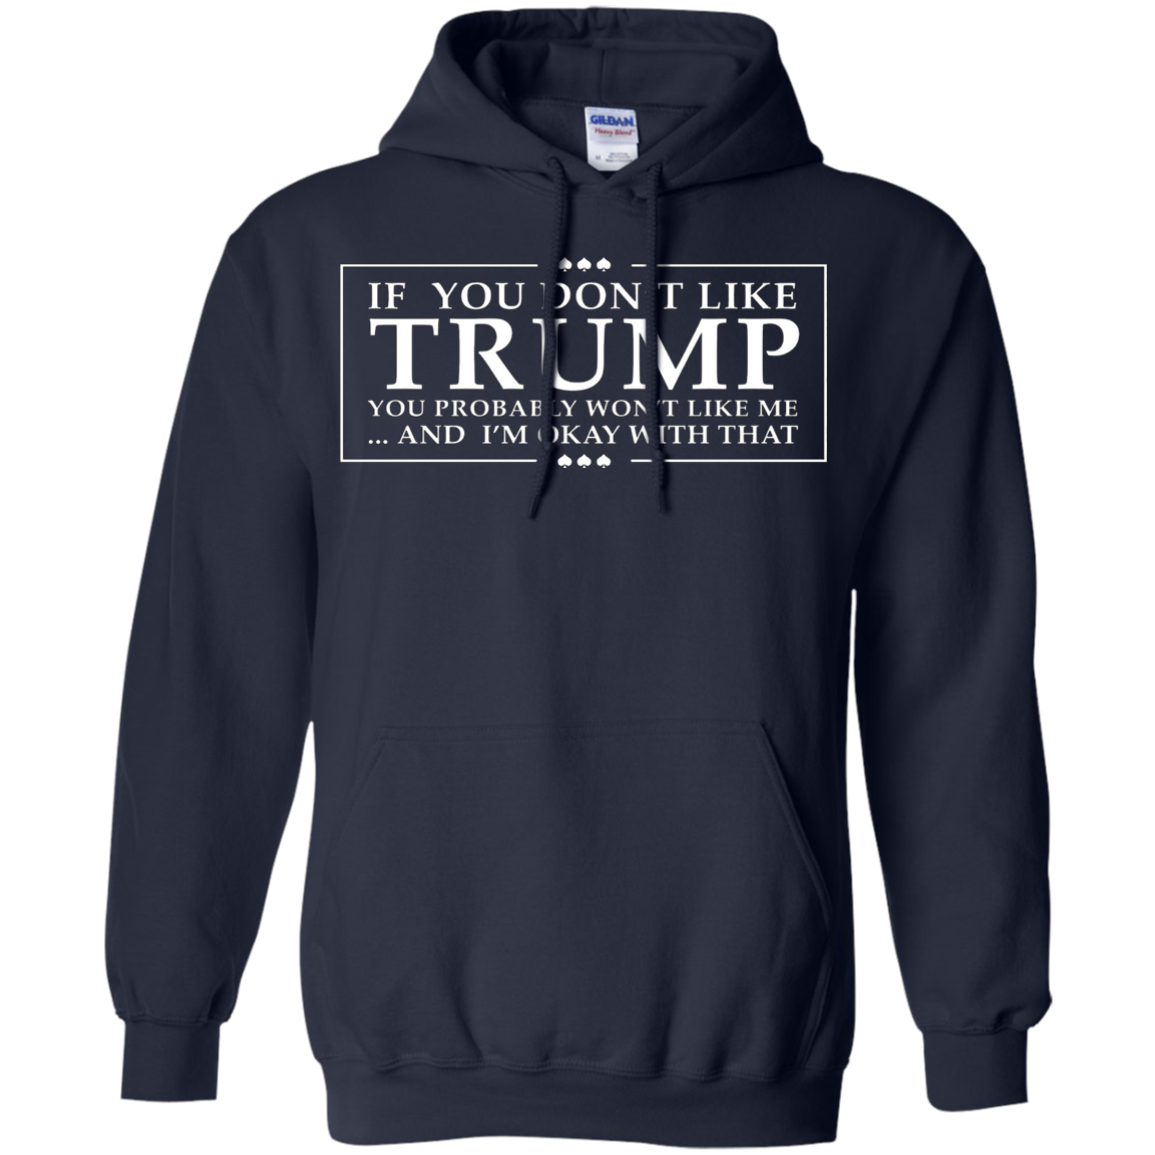 If you don't like Trump - Funny Trump T-shirt